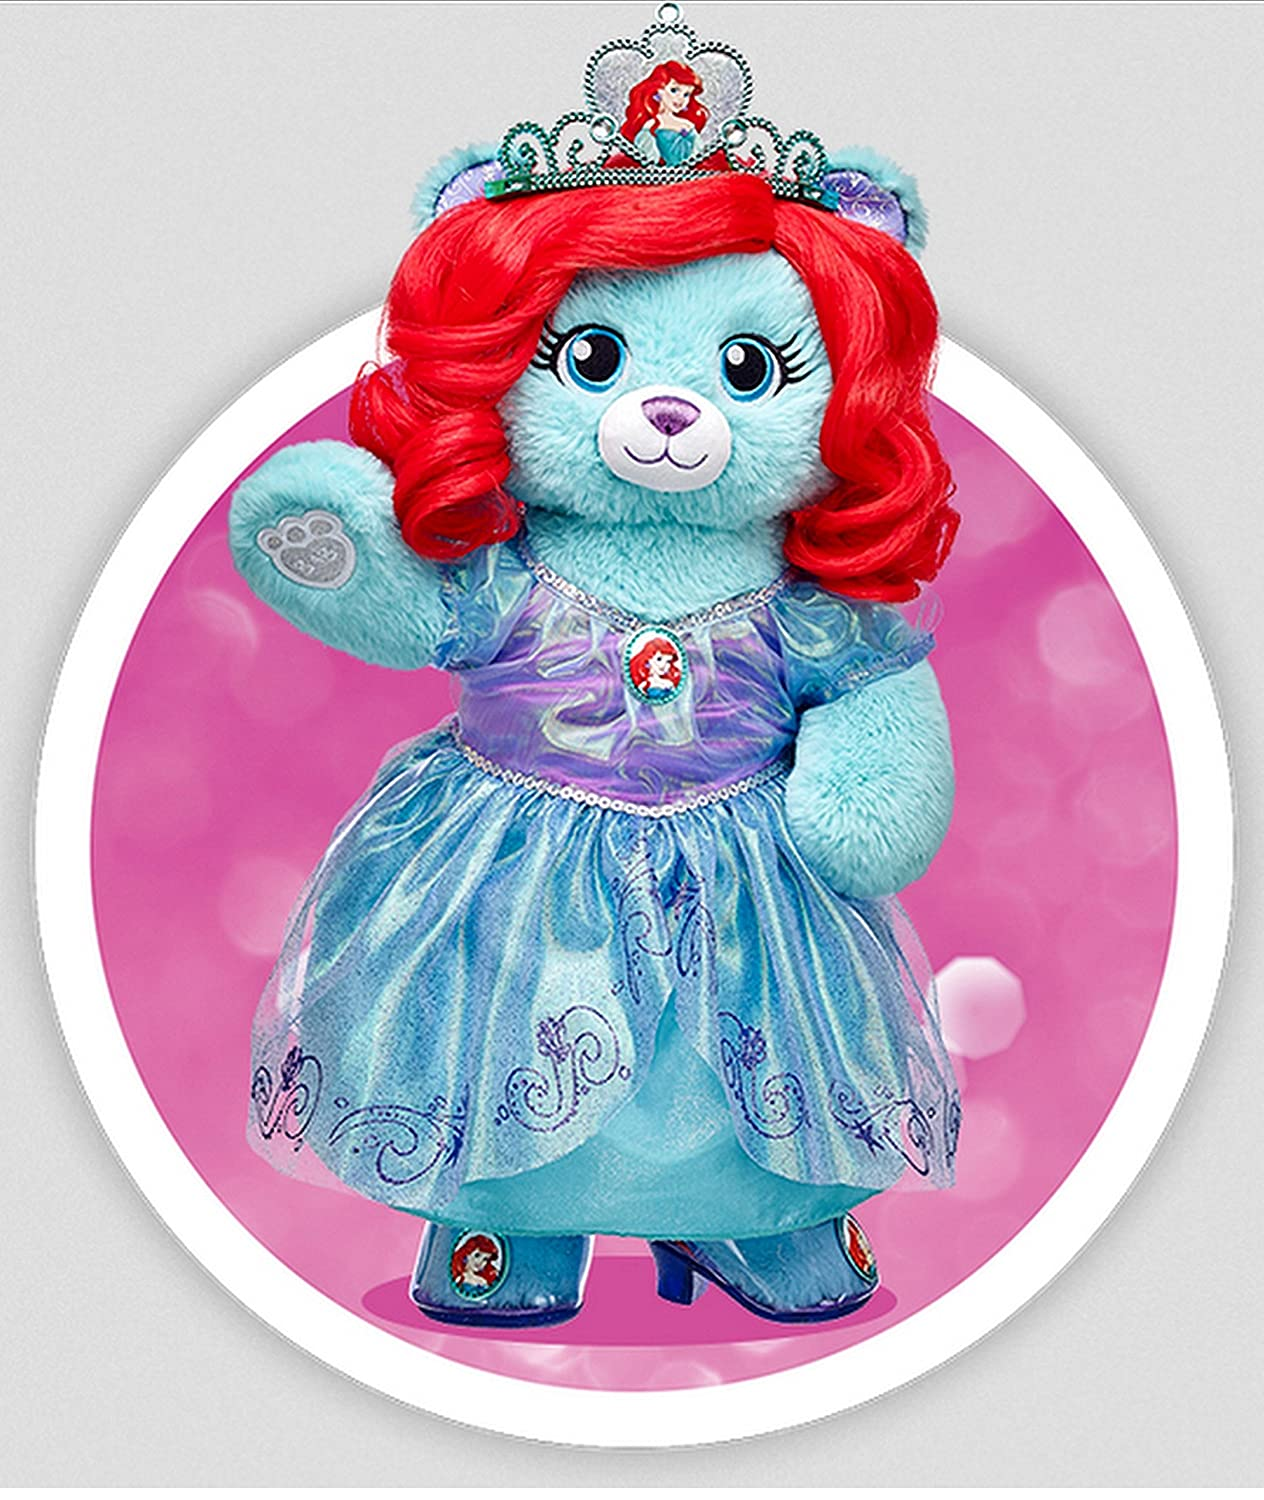 05586f6460a Amazon.com  Build a Bear Disney Princess Ariel Inspired Teddy Limited  Edition COA 16in. Stuffed Plush Toy Animal  Toys   Games